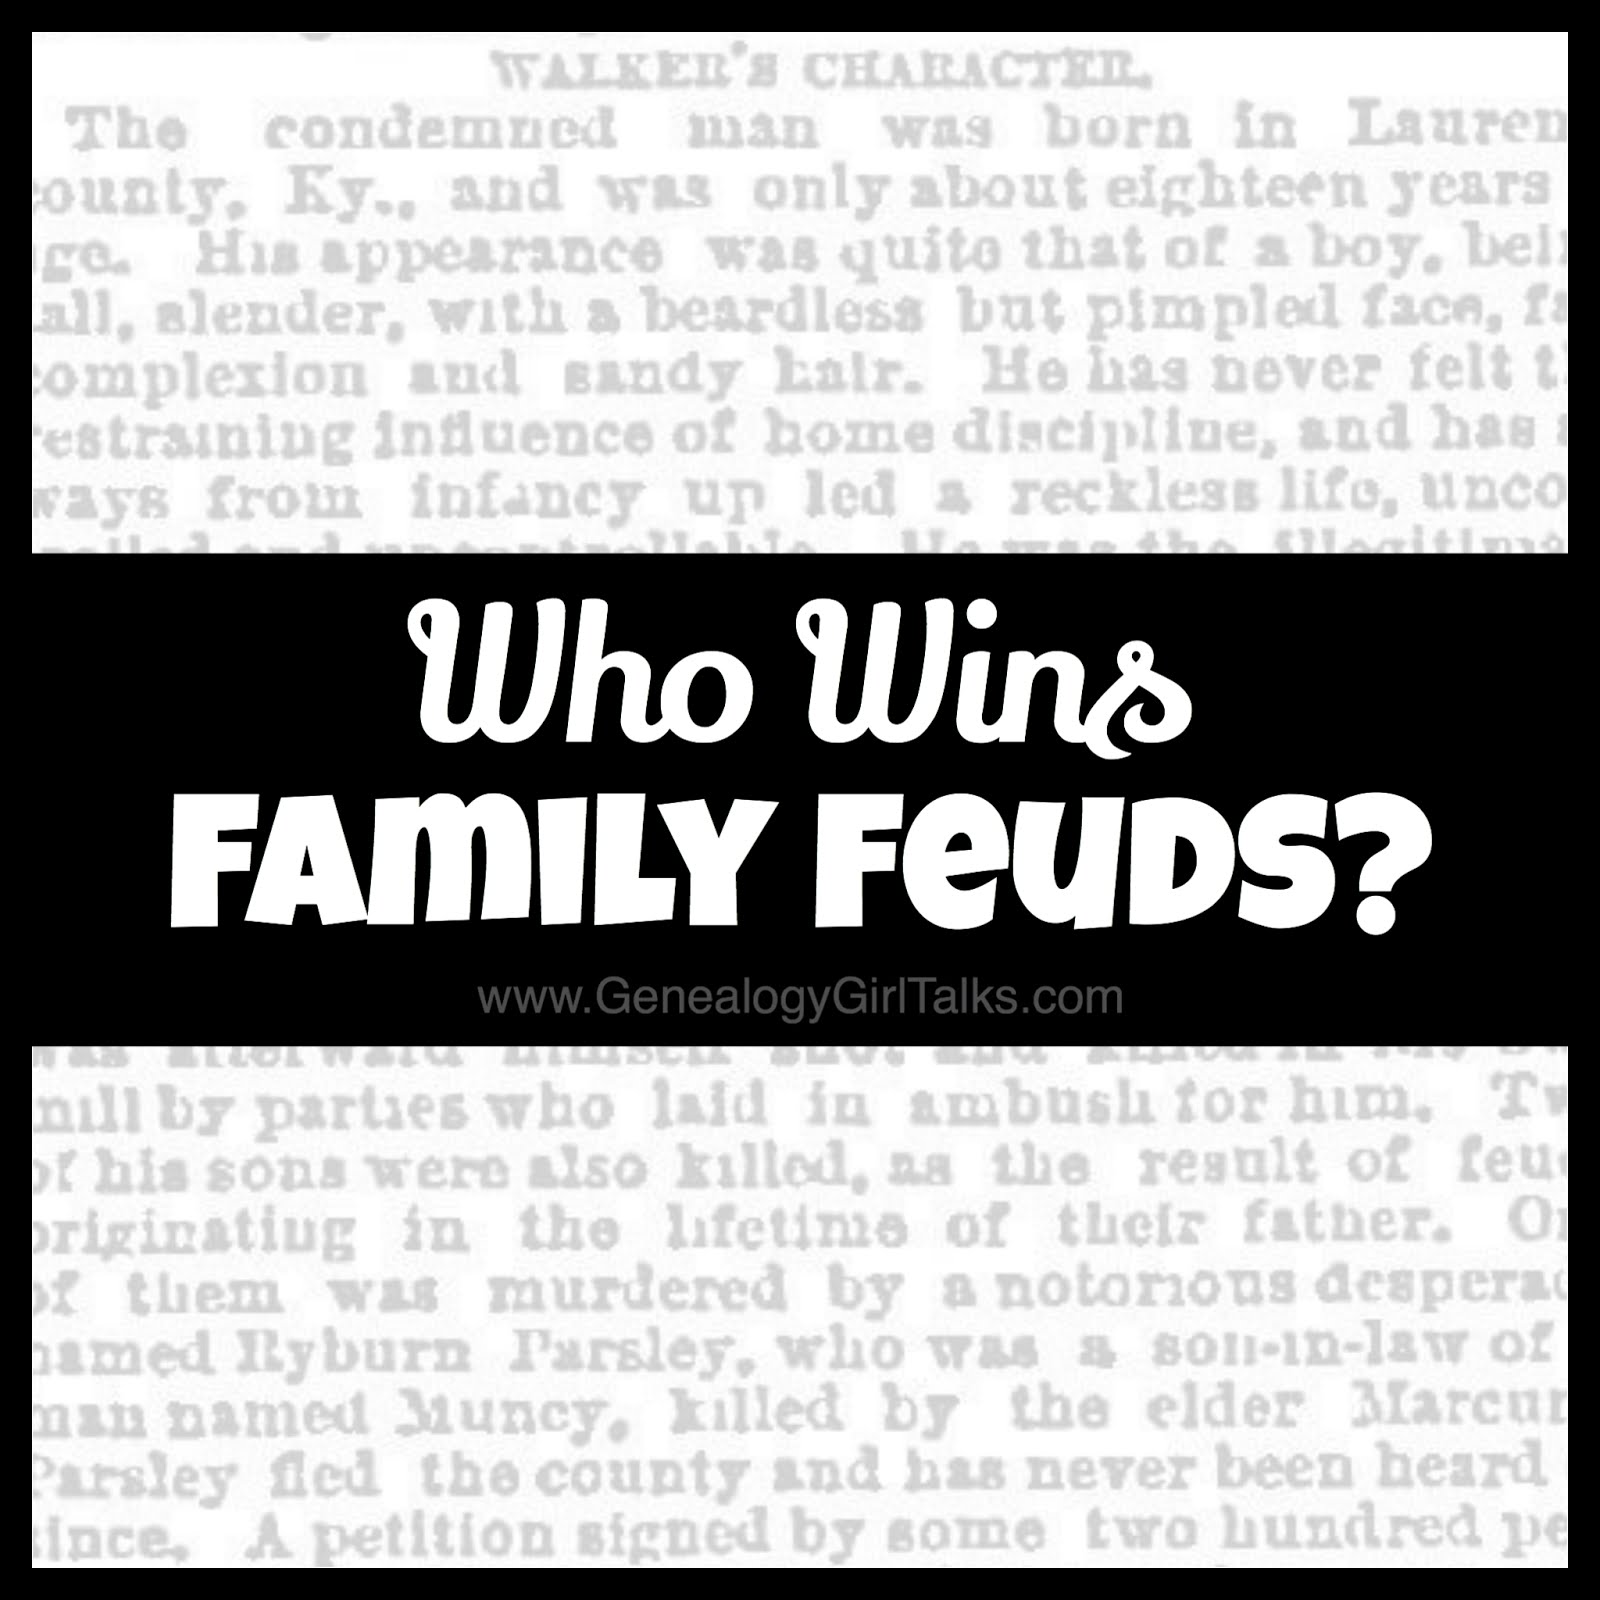 Who Wins Family Feuds? by Genealogy Girl Talks / #HatfieldMcCoy #McCoy #Hatfield #FamilyFeud #HatfieldMcCoyFeud